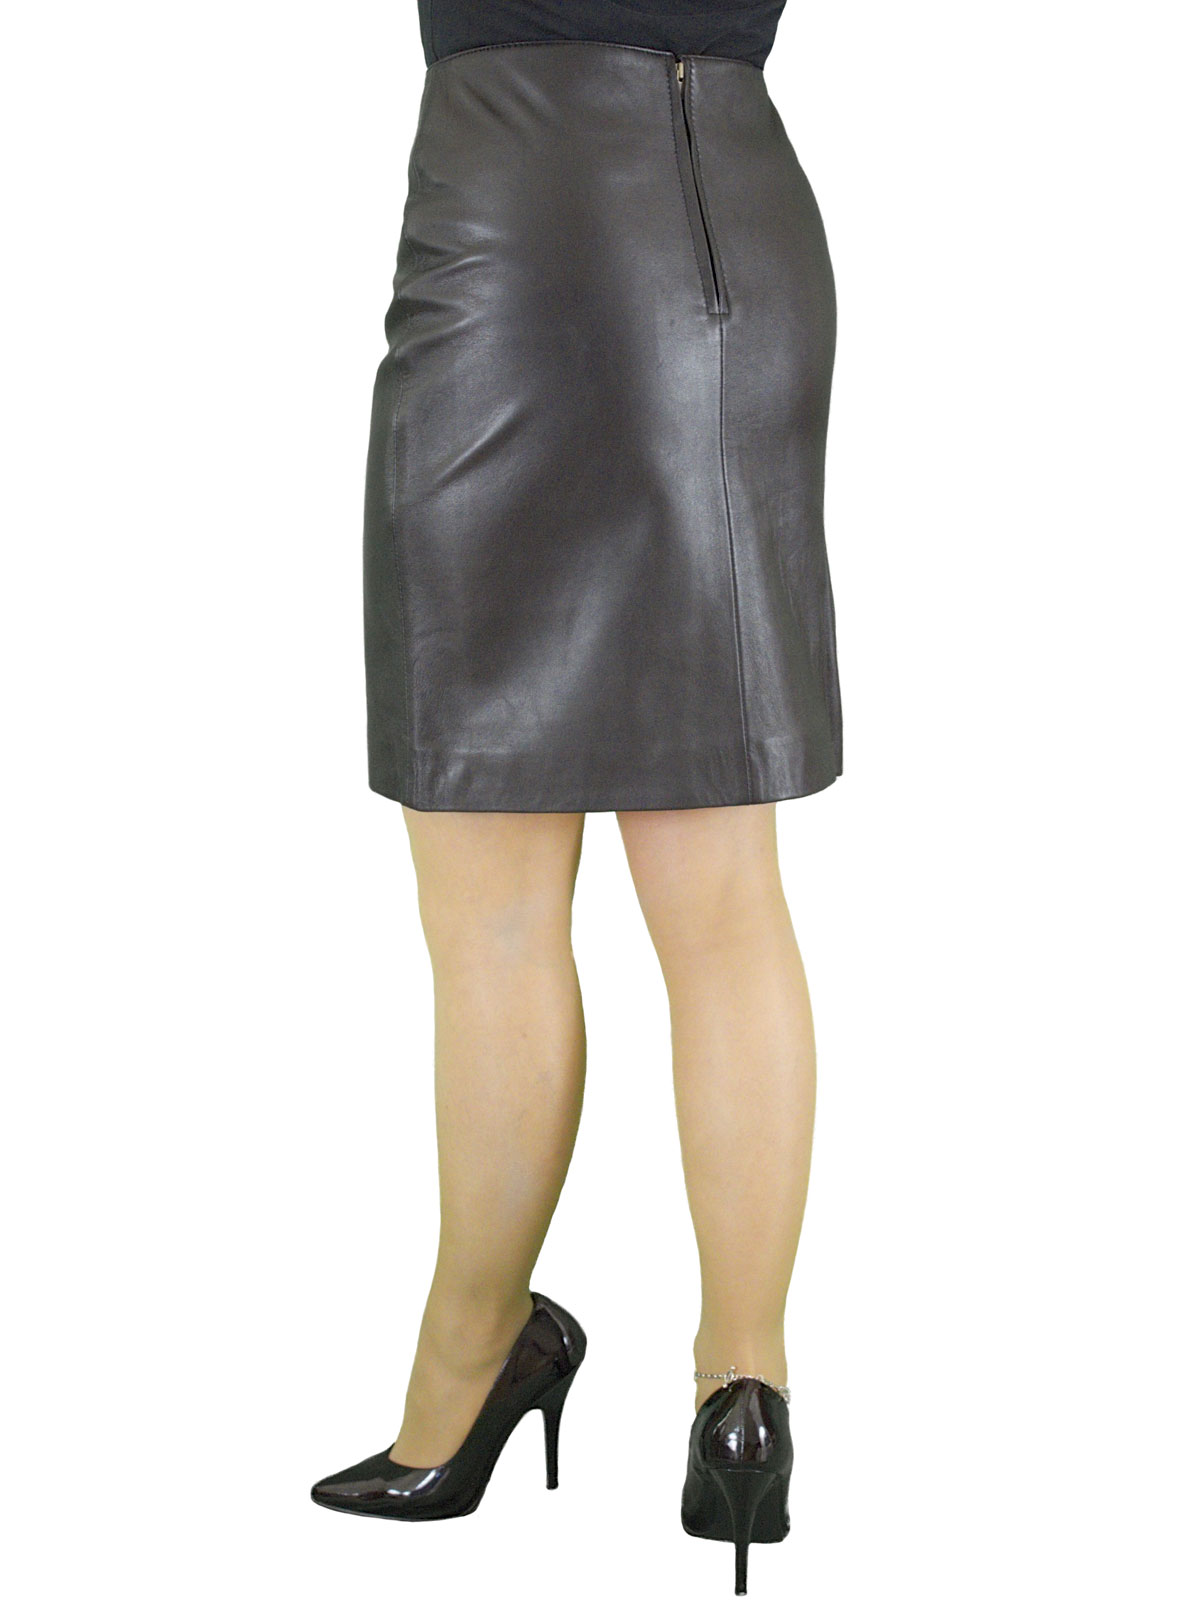 Luxury Leather Pencil Skirt, above knee 19in length (5 ...